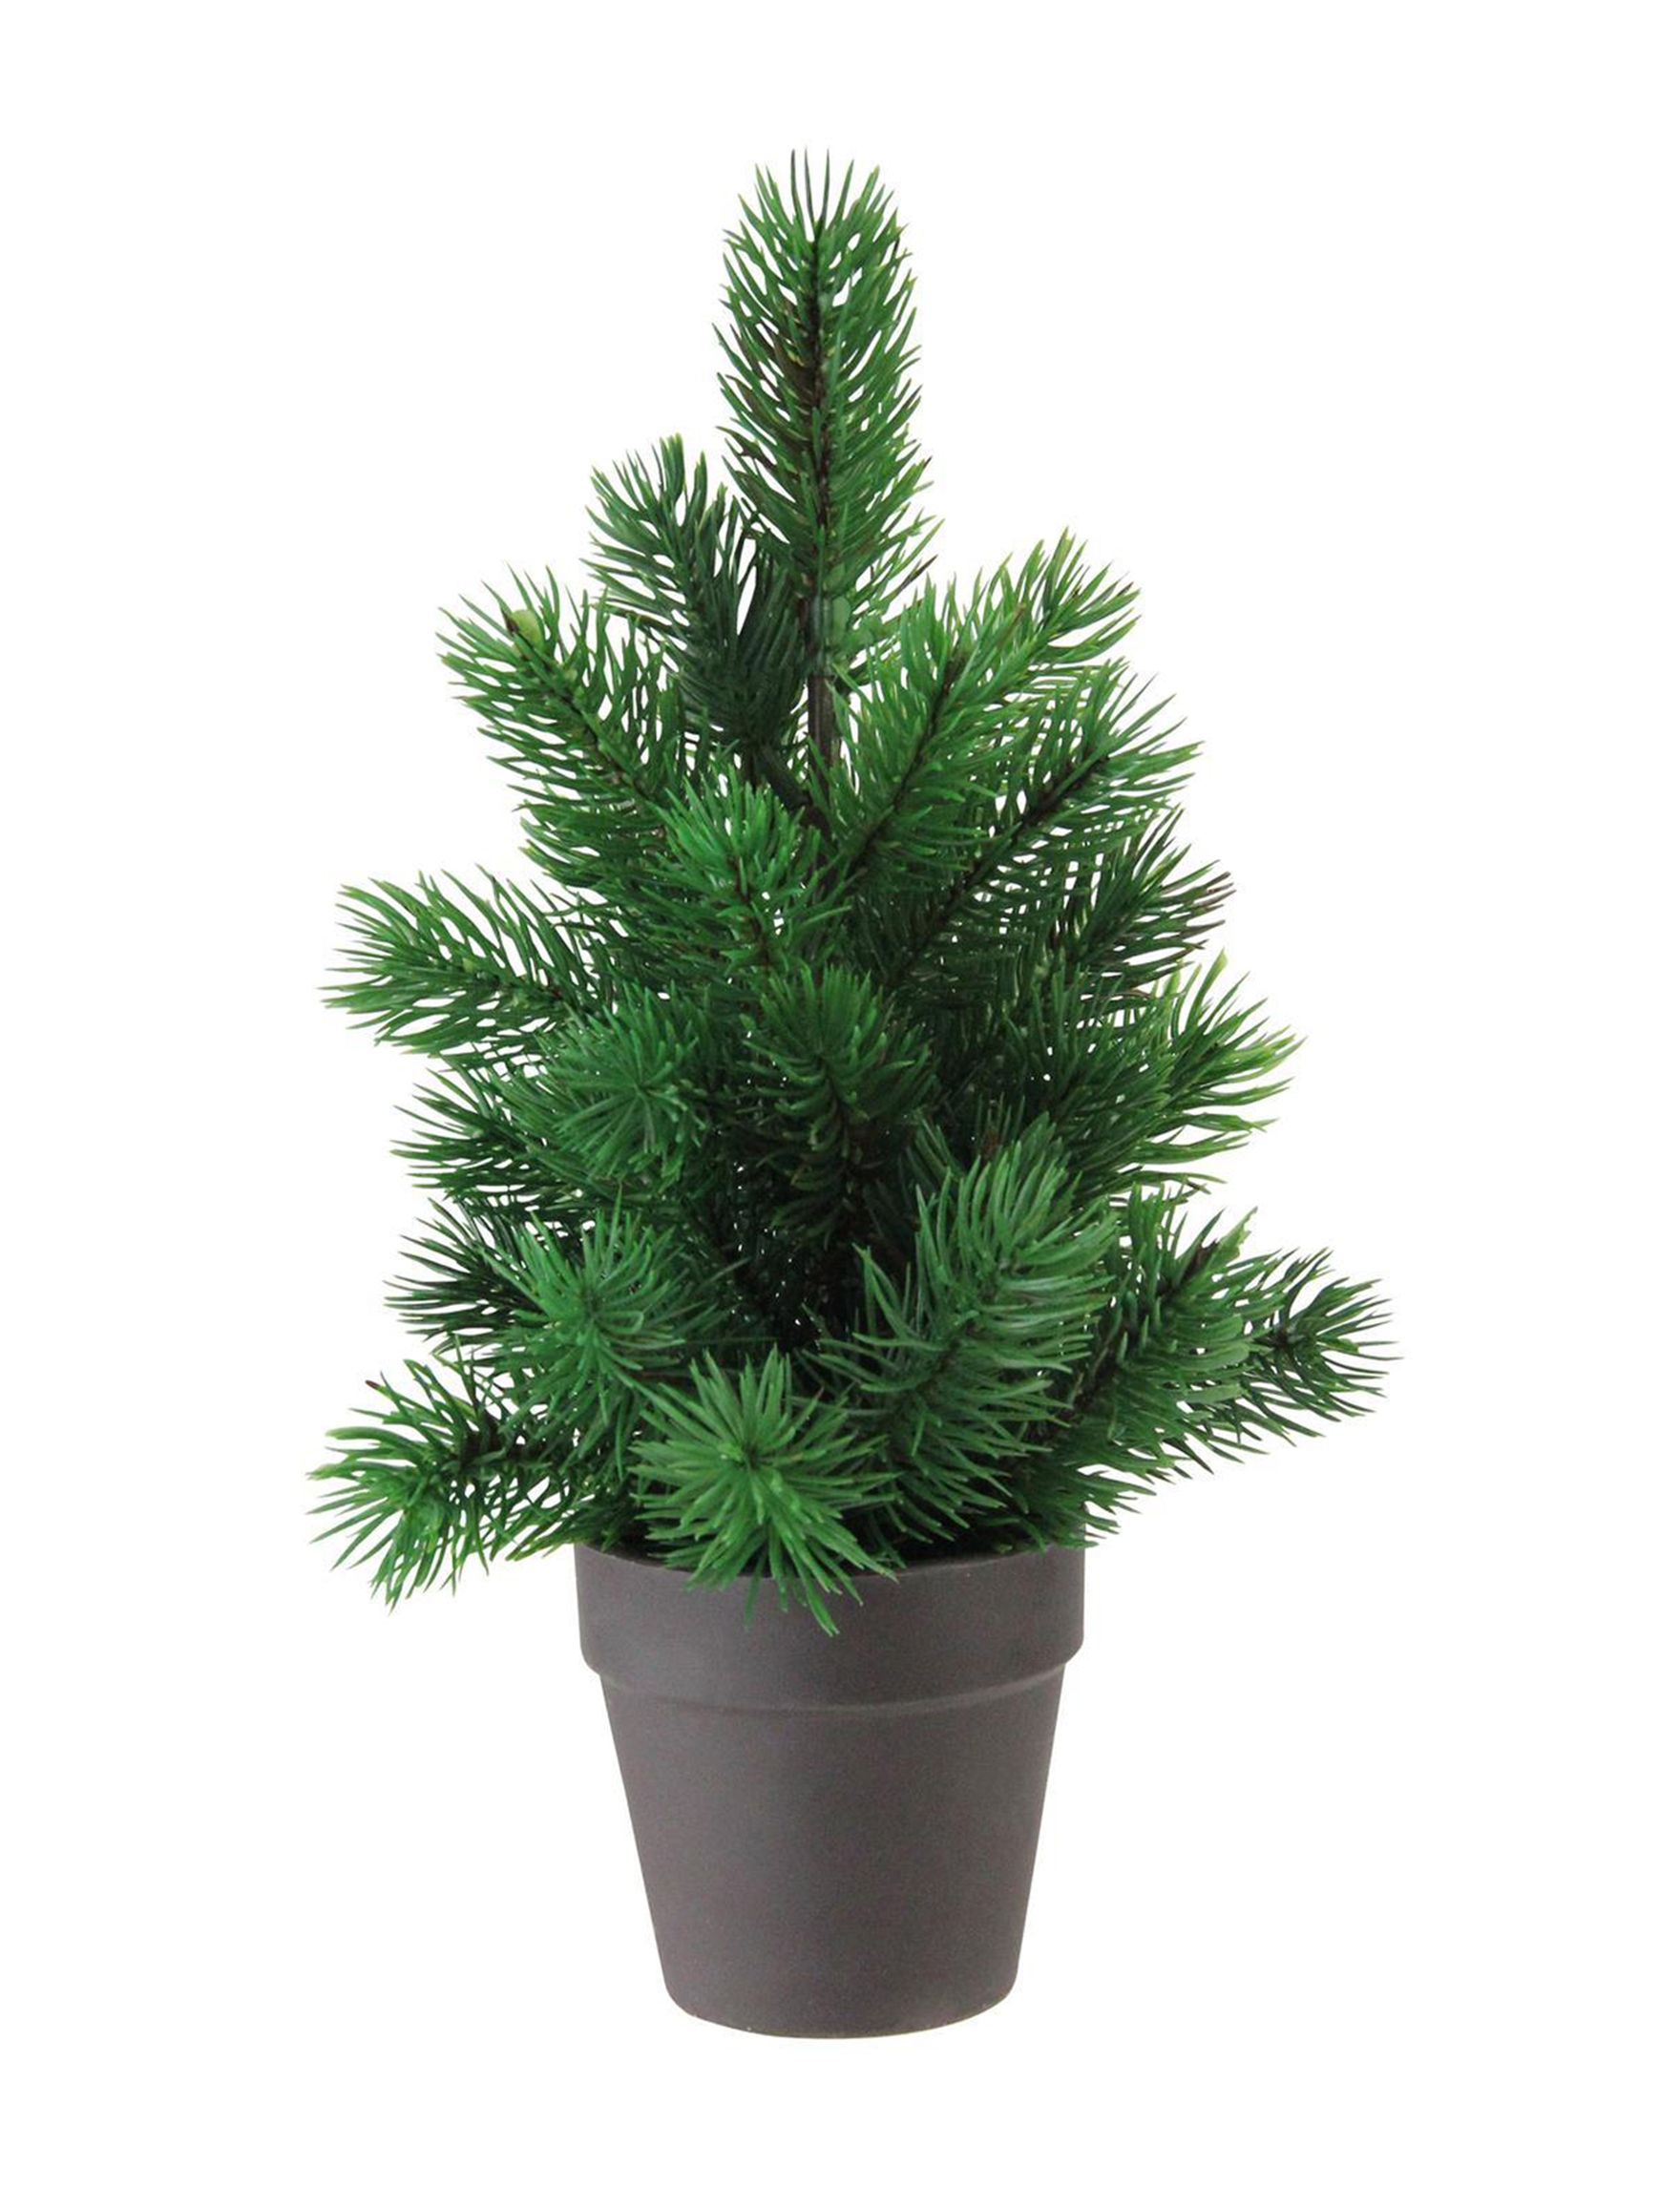 Northlight Grey / Green Christmas Trees Decorative Objects Holiday Decor Home Accents